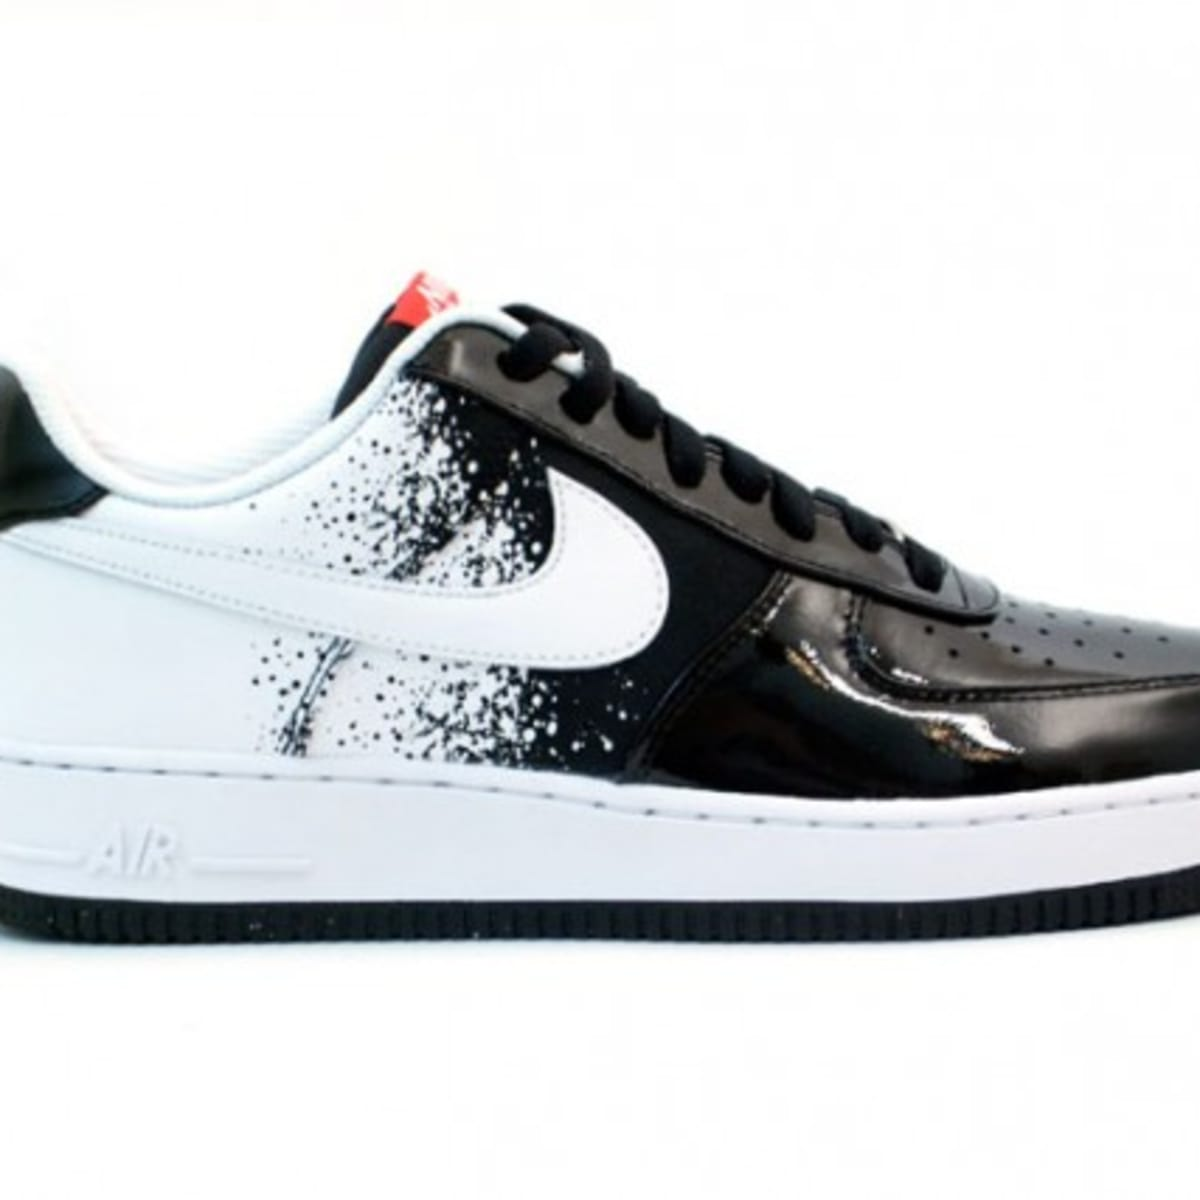 Nike Air Force 1 Low Premium Black White Hot Red Freshness Mag